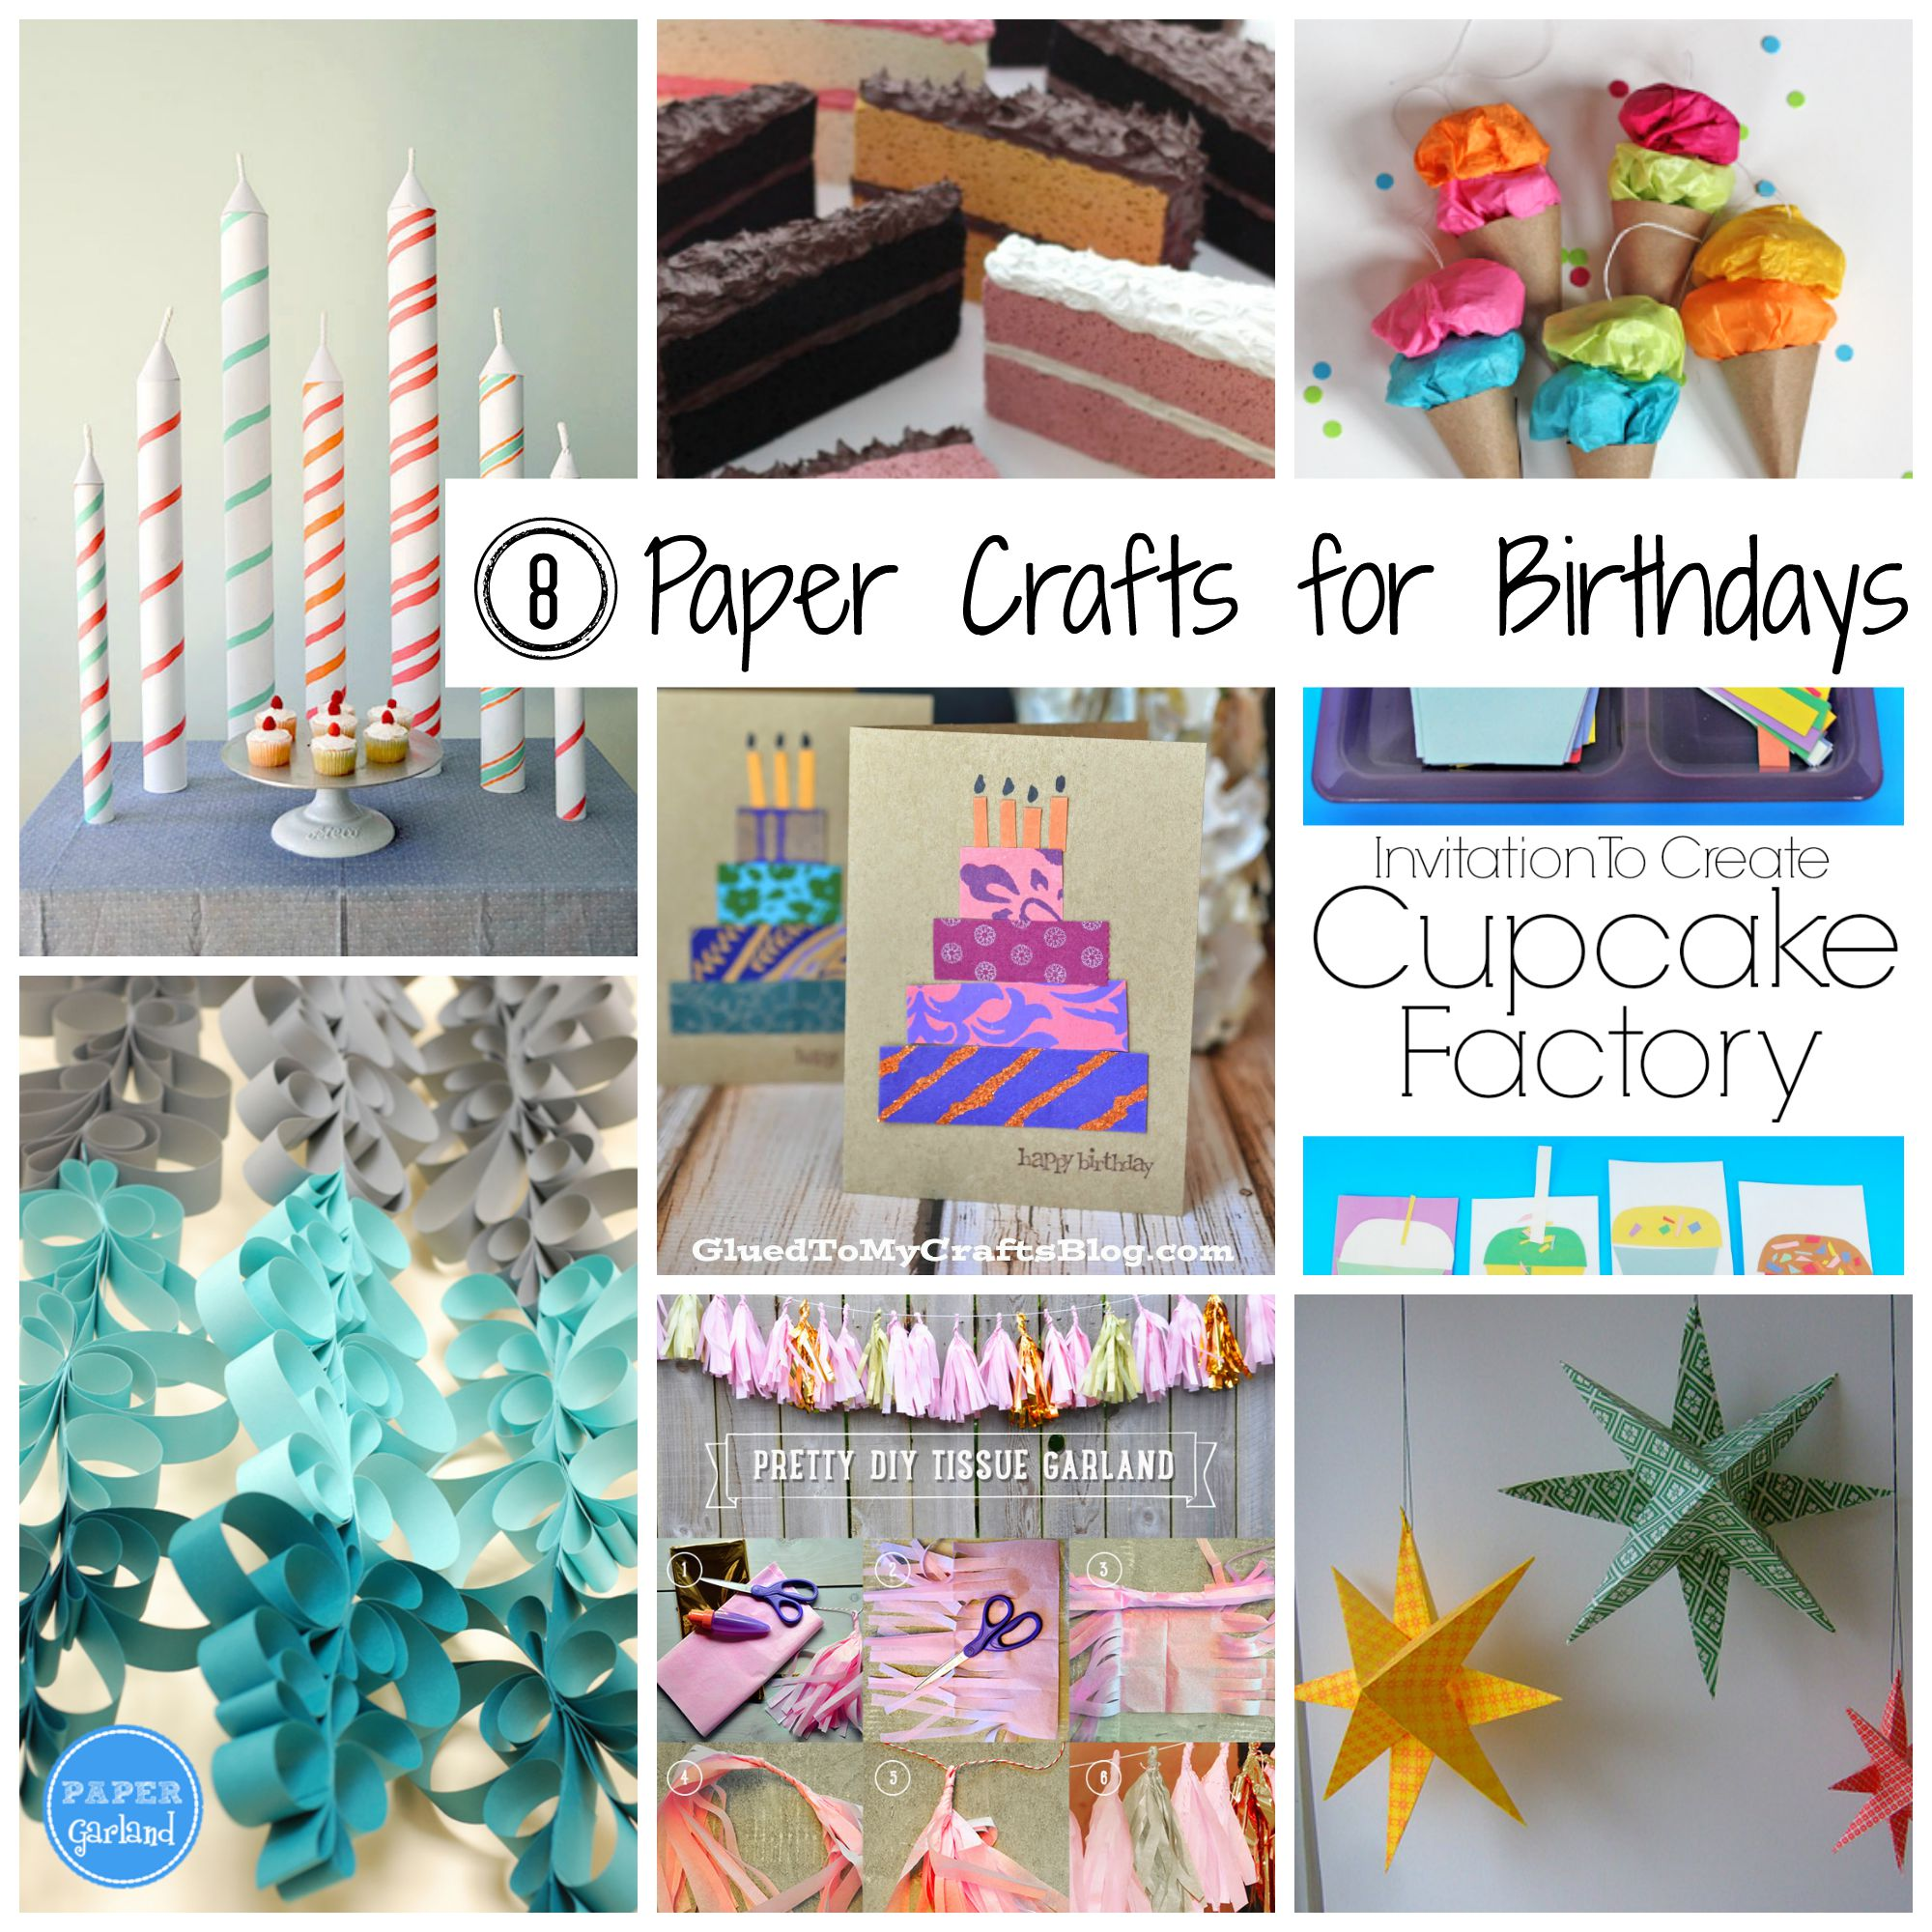 8 paper crafts for birthdays the papery craftery for Crafts to do at a birthday party